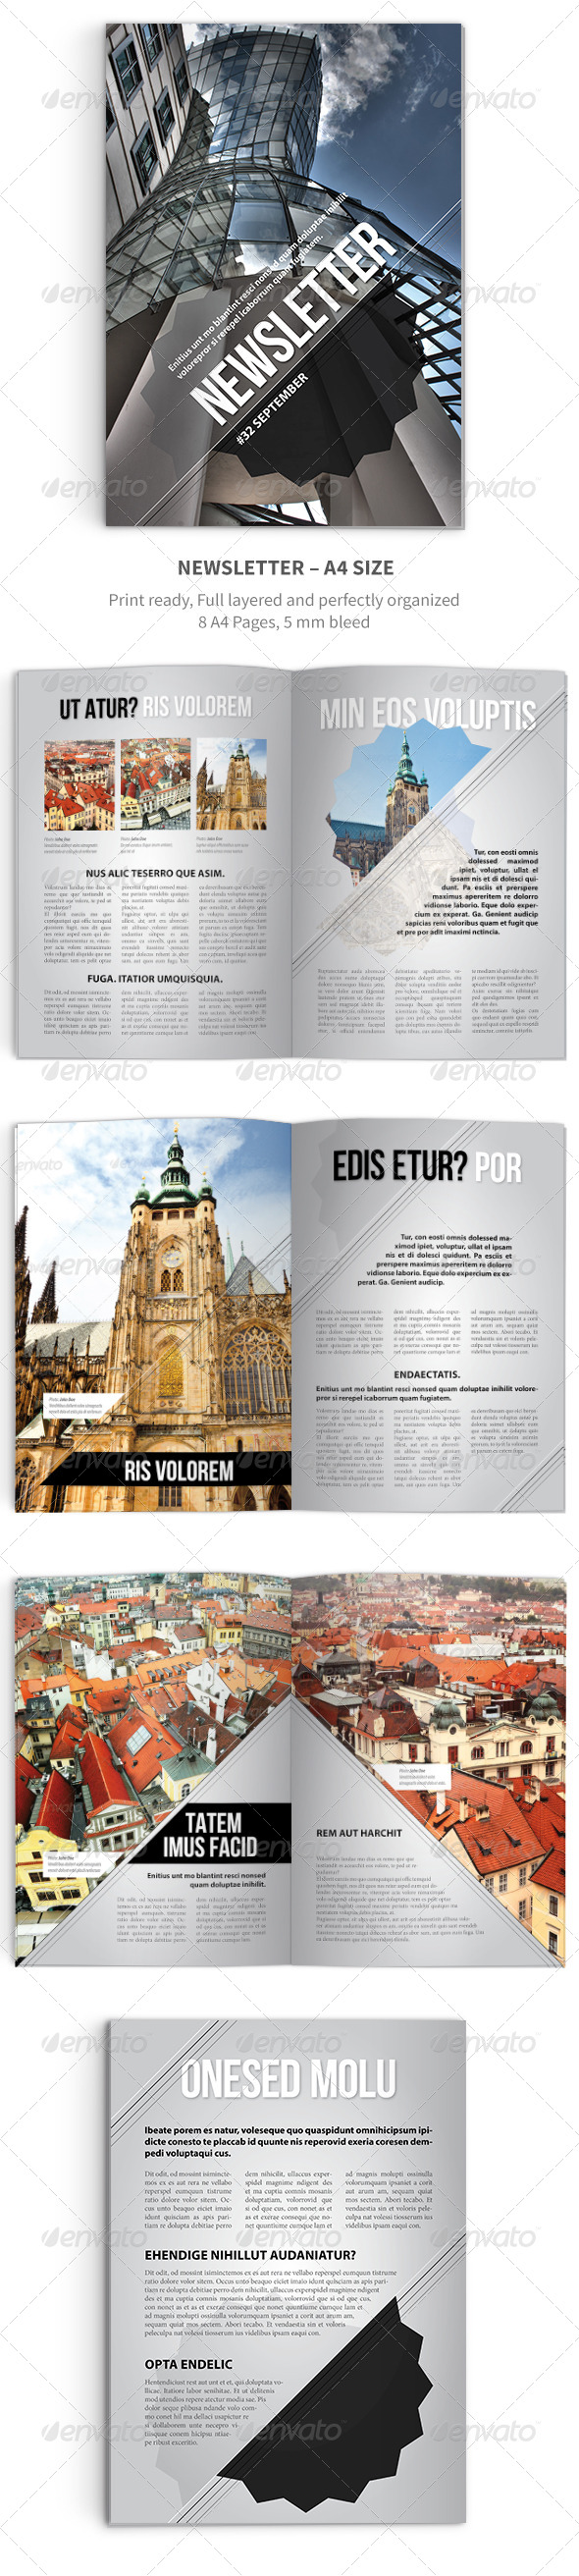 GraphicRiver Newsletter vol 12 Indesign Template 5115816